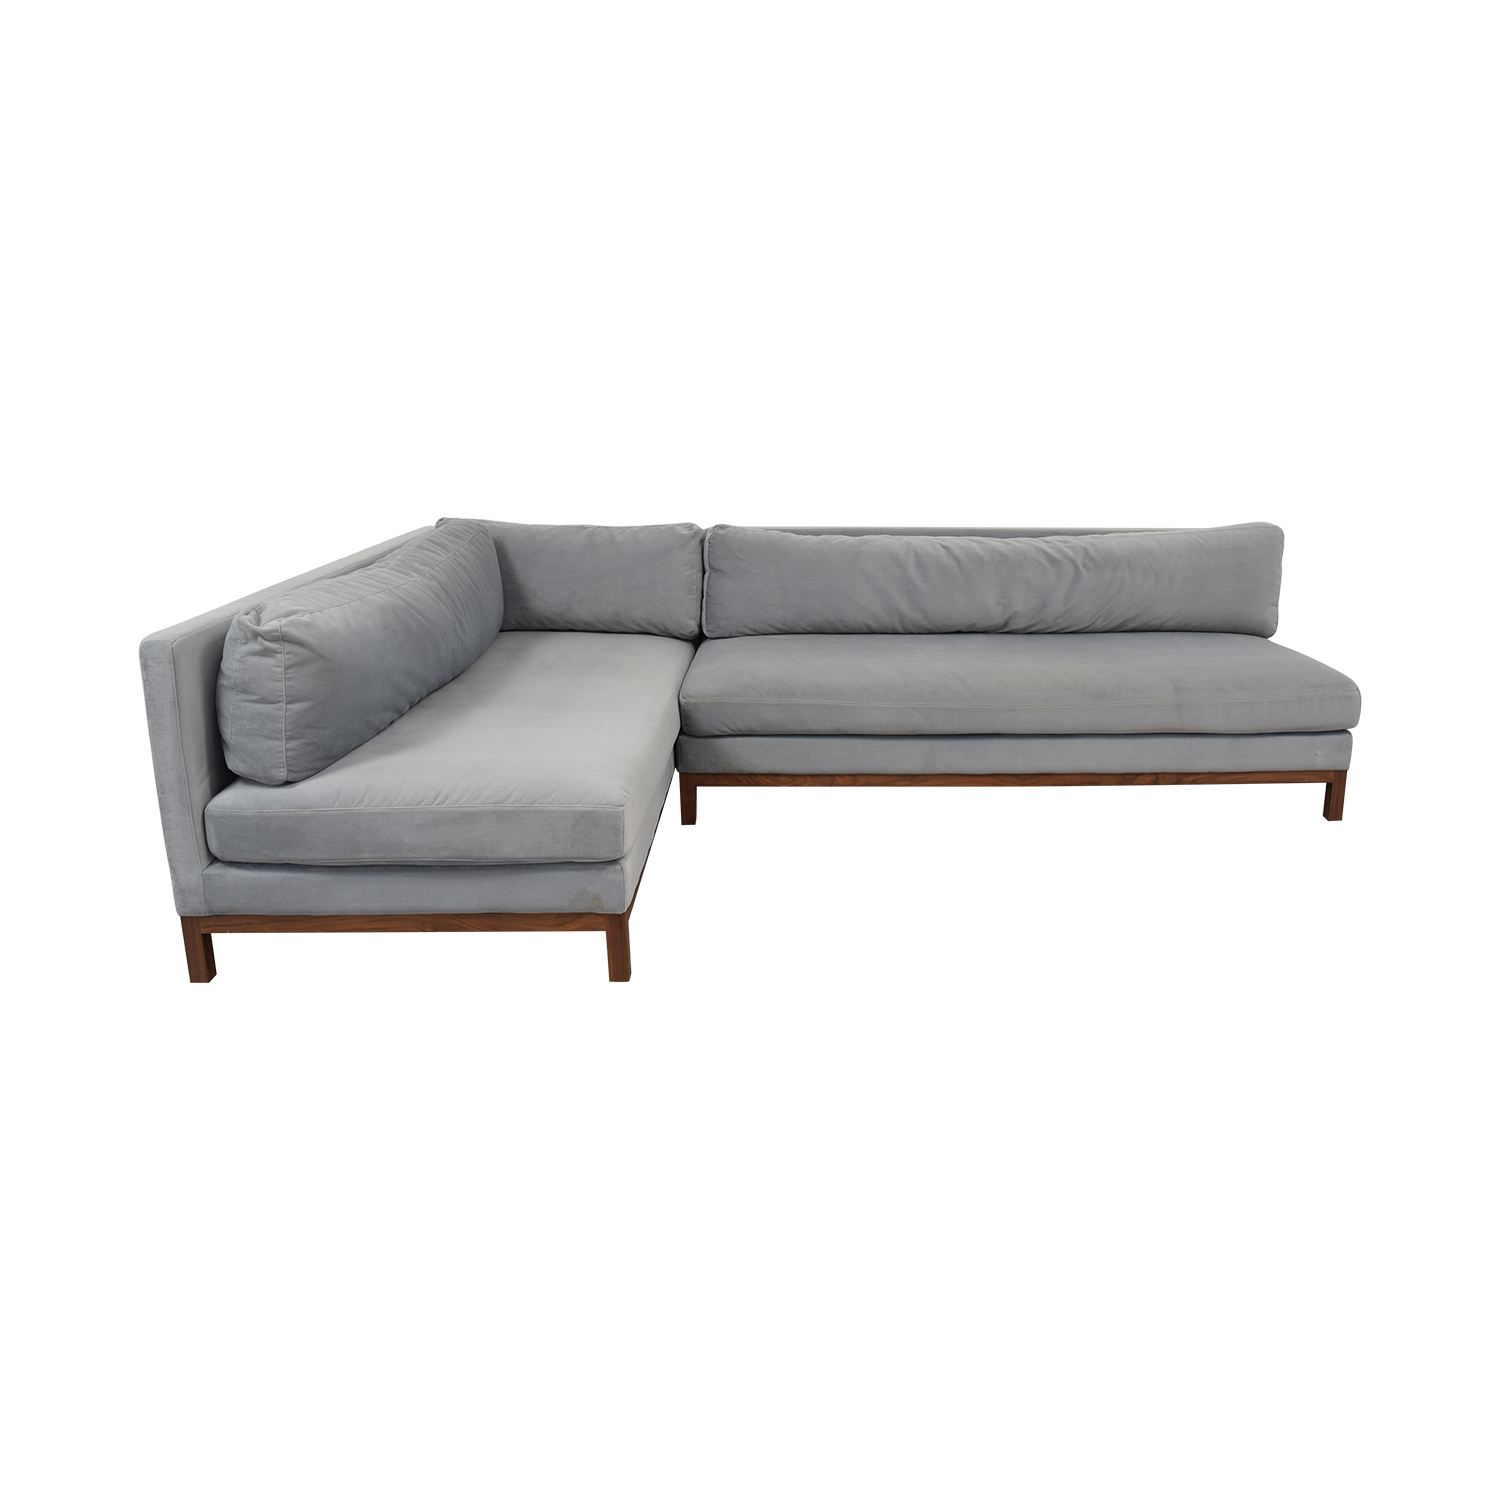 shop Interior Define Jasper Chaise Sectional Sofa Interior Define